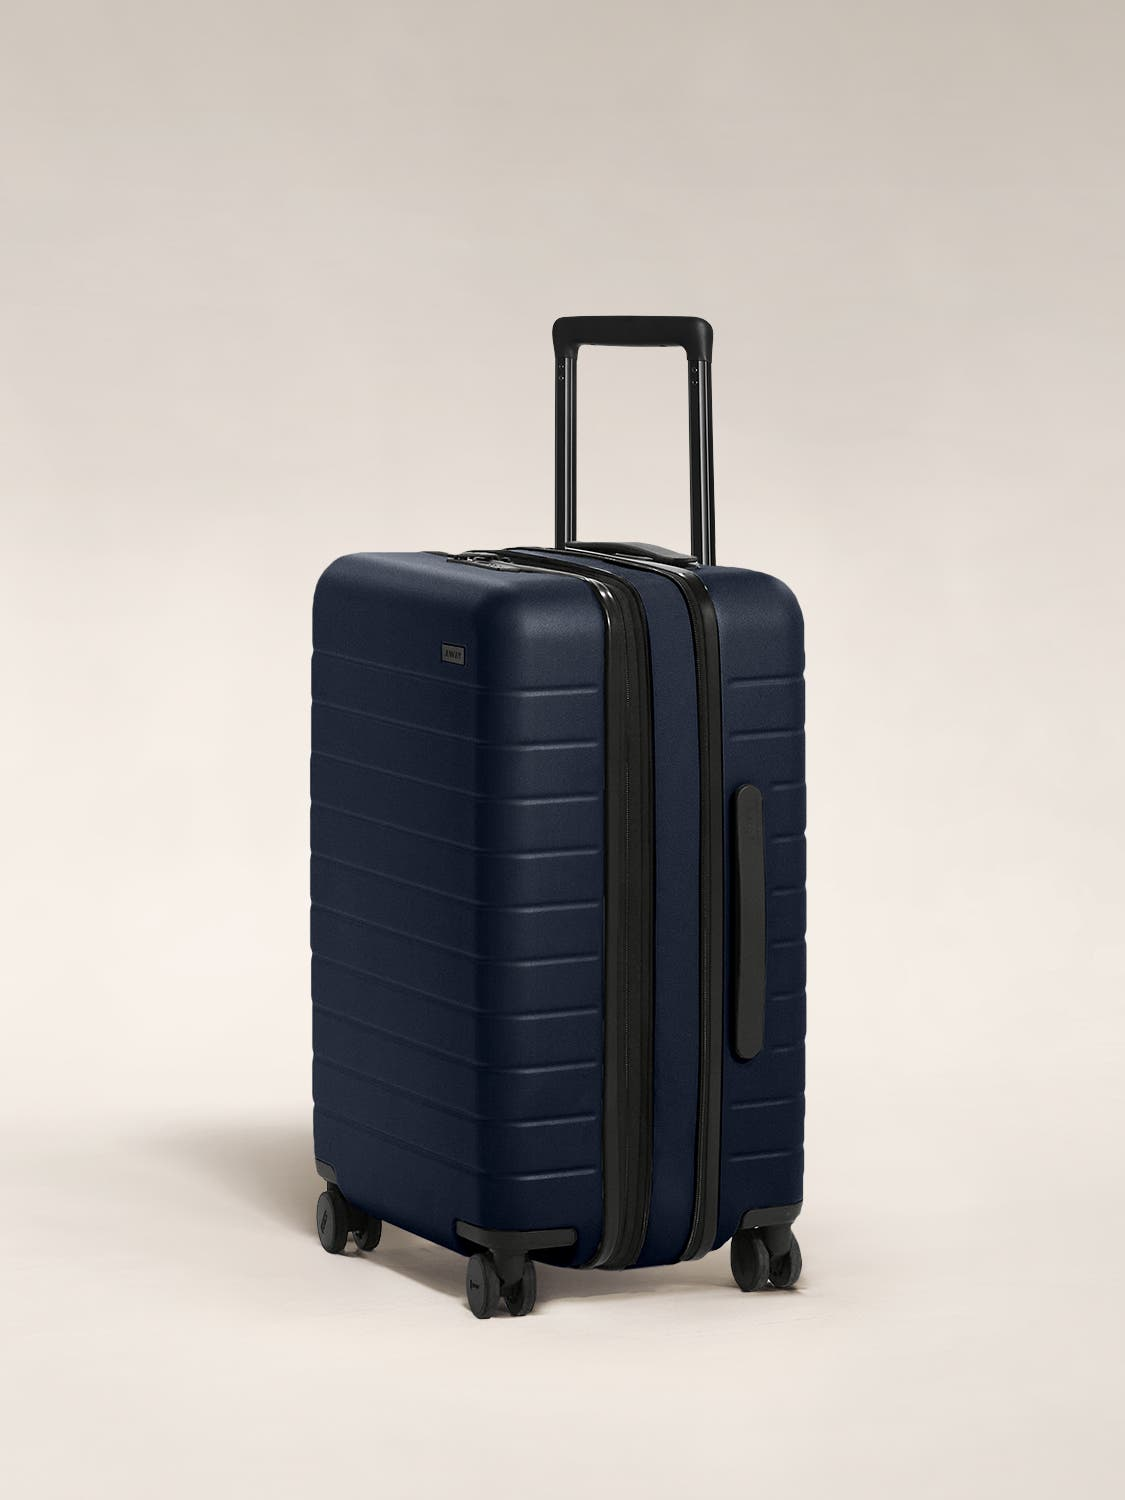 The Bigger Carry-On Flex in Navy shown at an angle with raised telescoping handle.